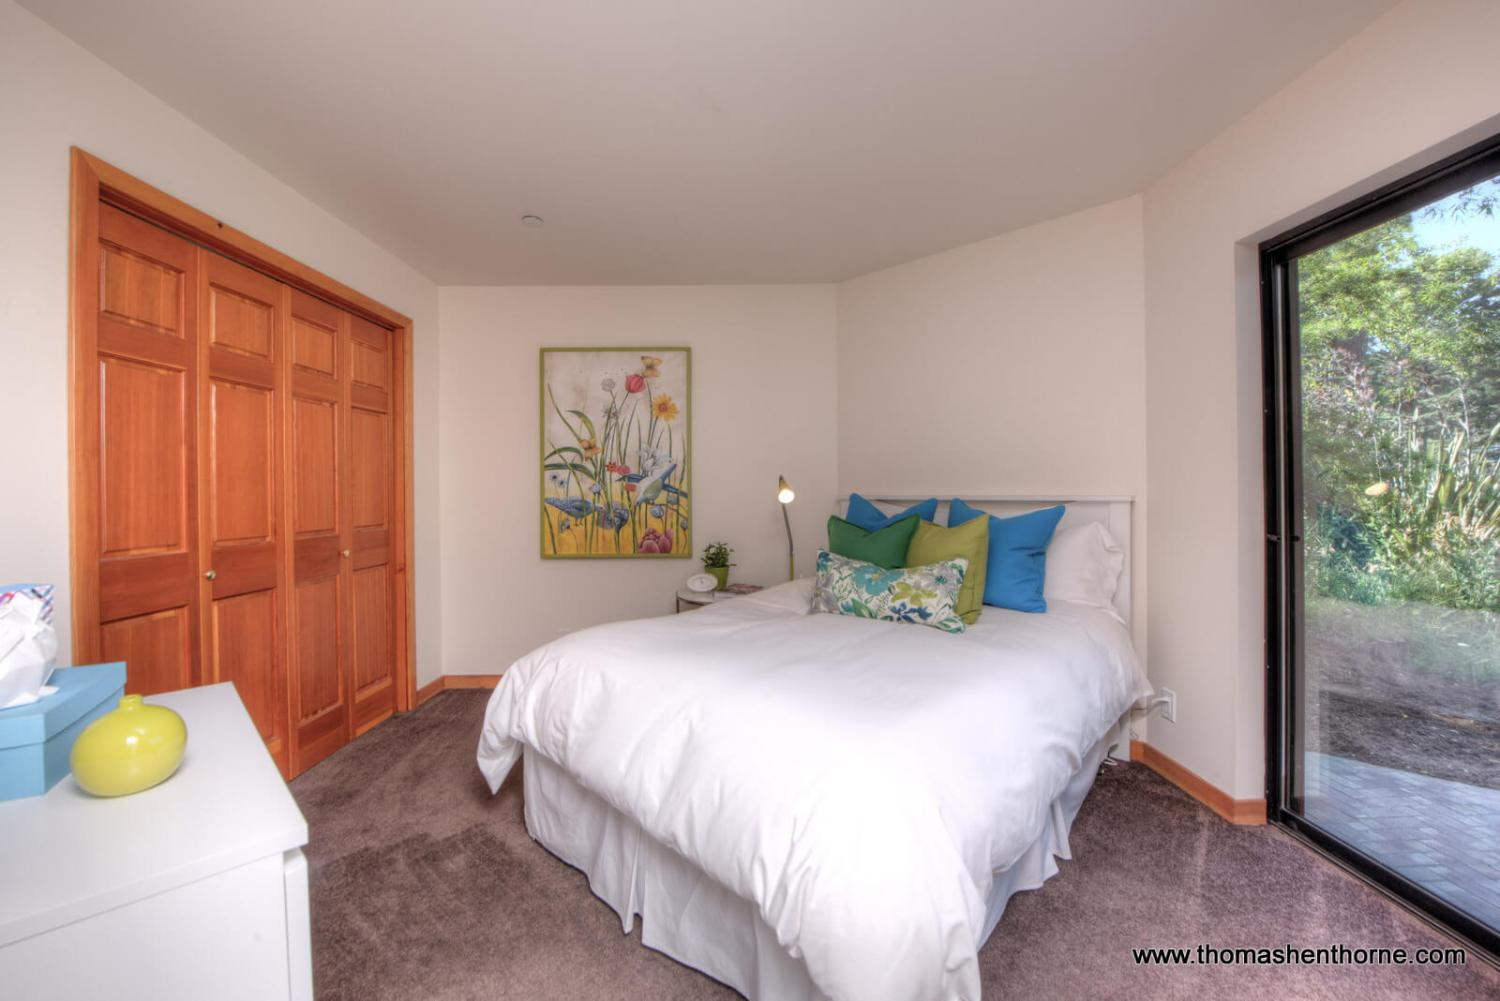 Guest room with white comforter on bed and slider to right